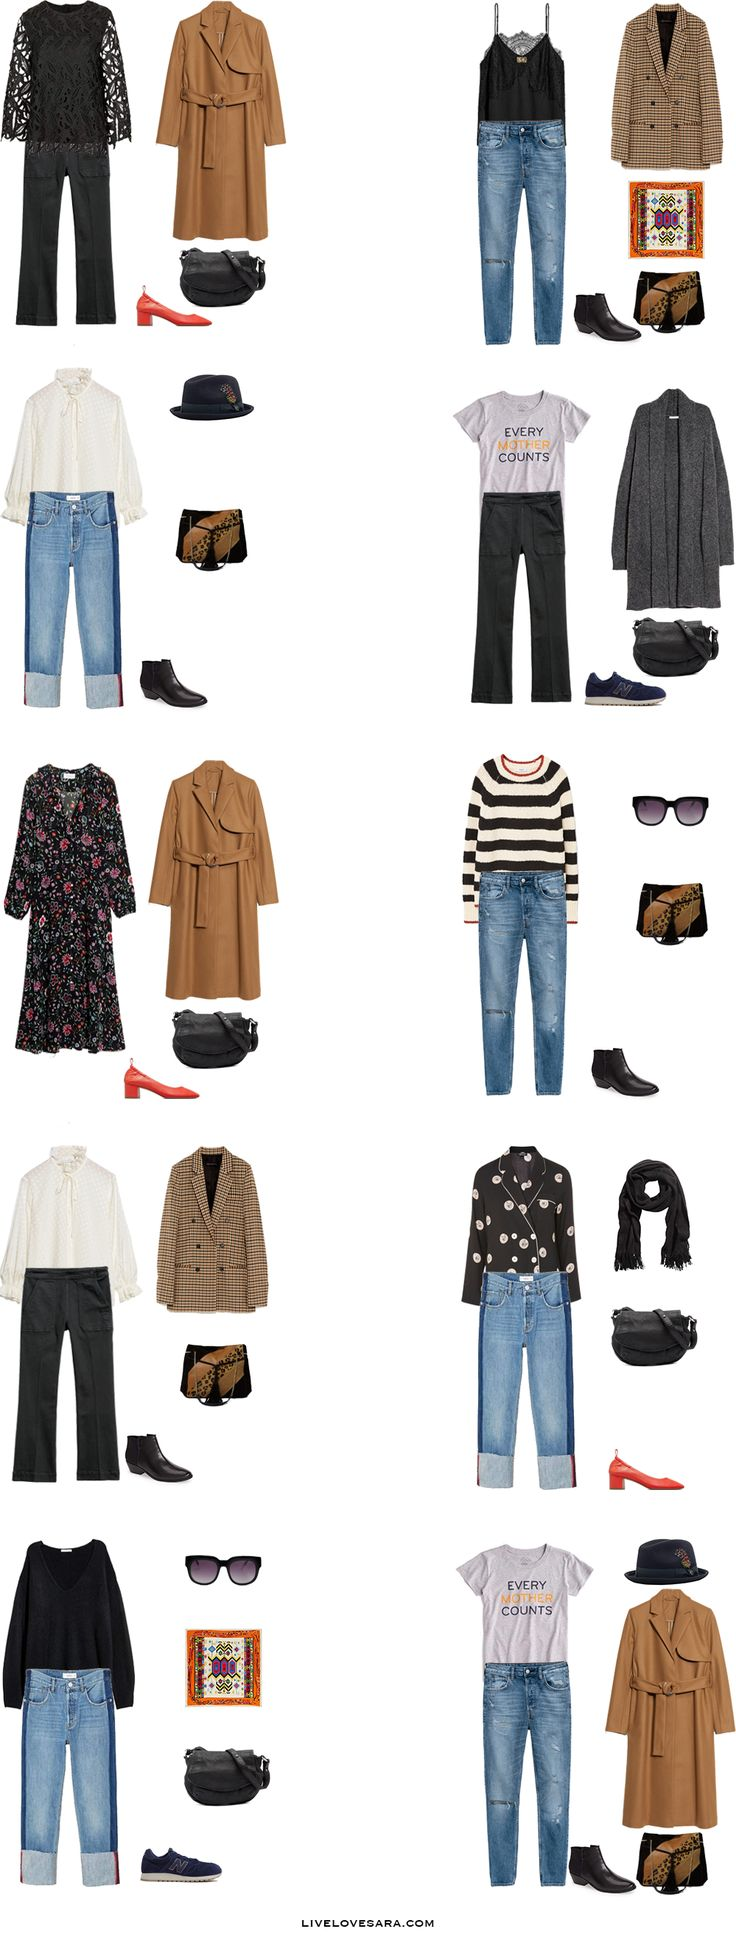 spring outfits, spring outfits for teen girls, spring outfits for work, spring outfits women, spring outfits boho, spring outfits casual, spring outfi…